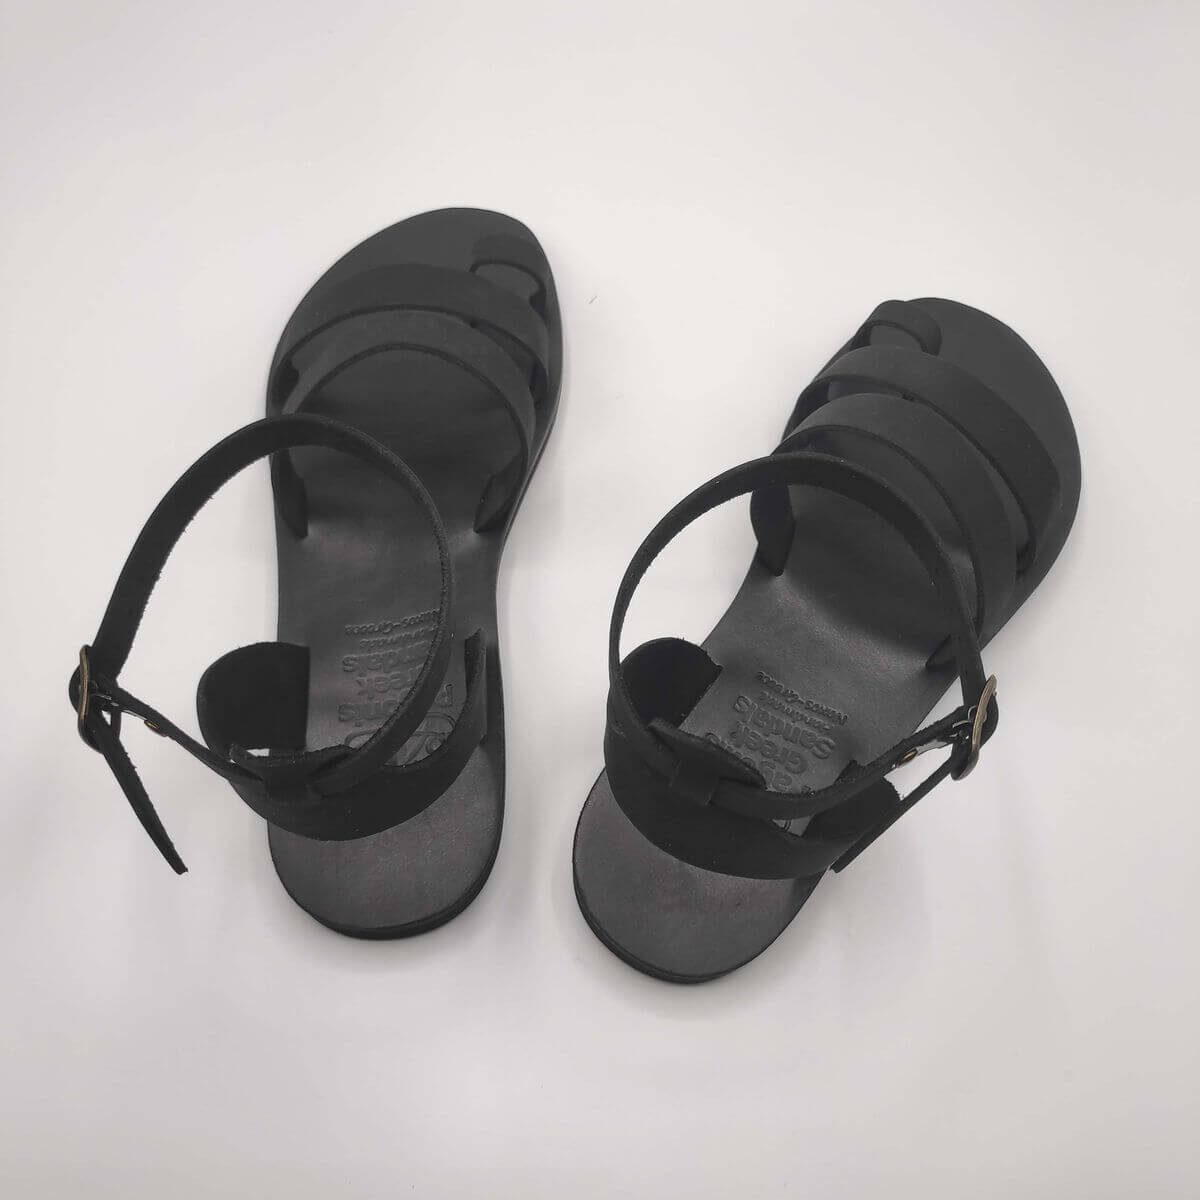 Black Nubuck leather dressy sandals with two straps, toe ring and high ankle strap, back view